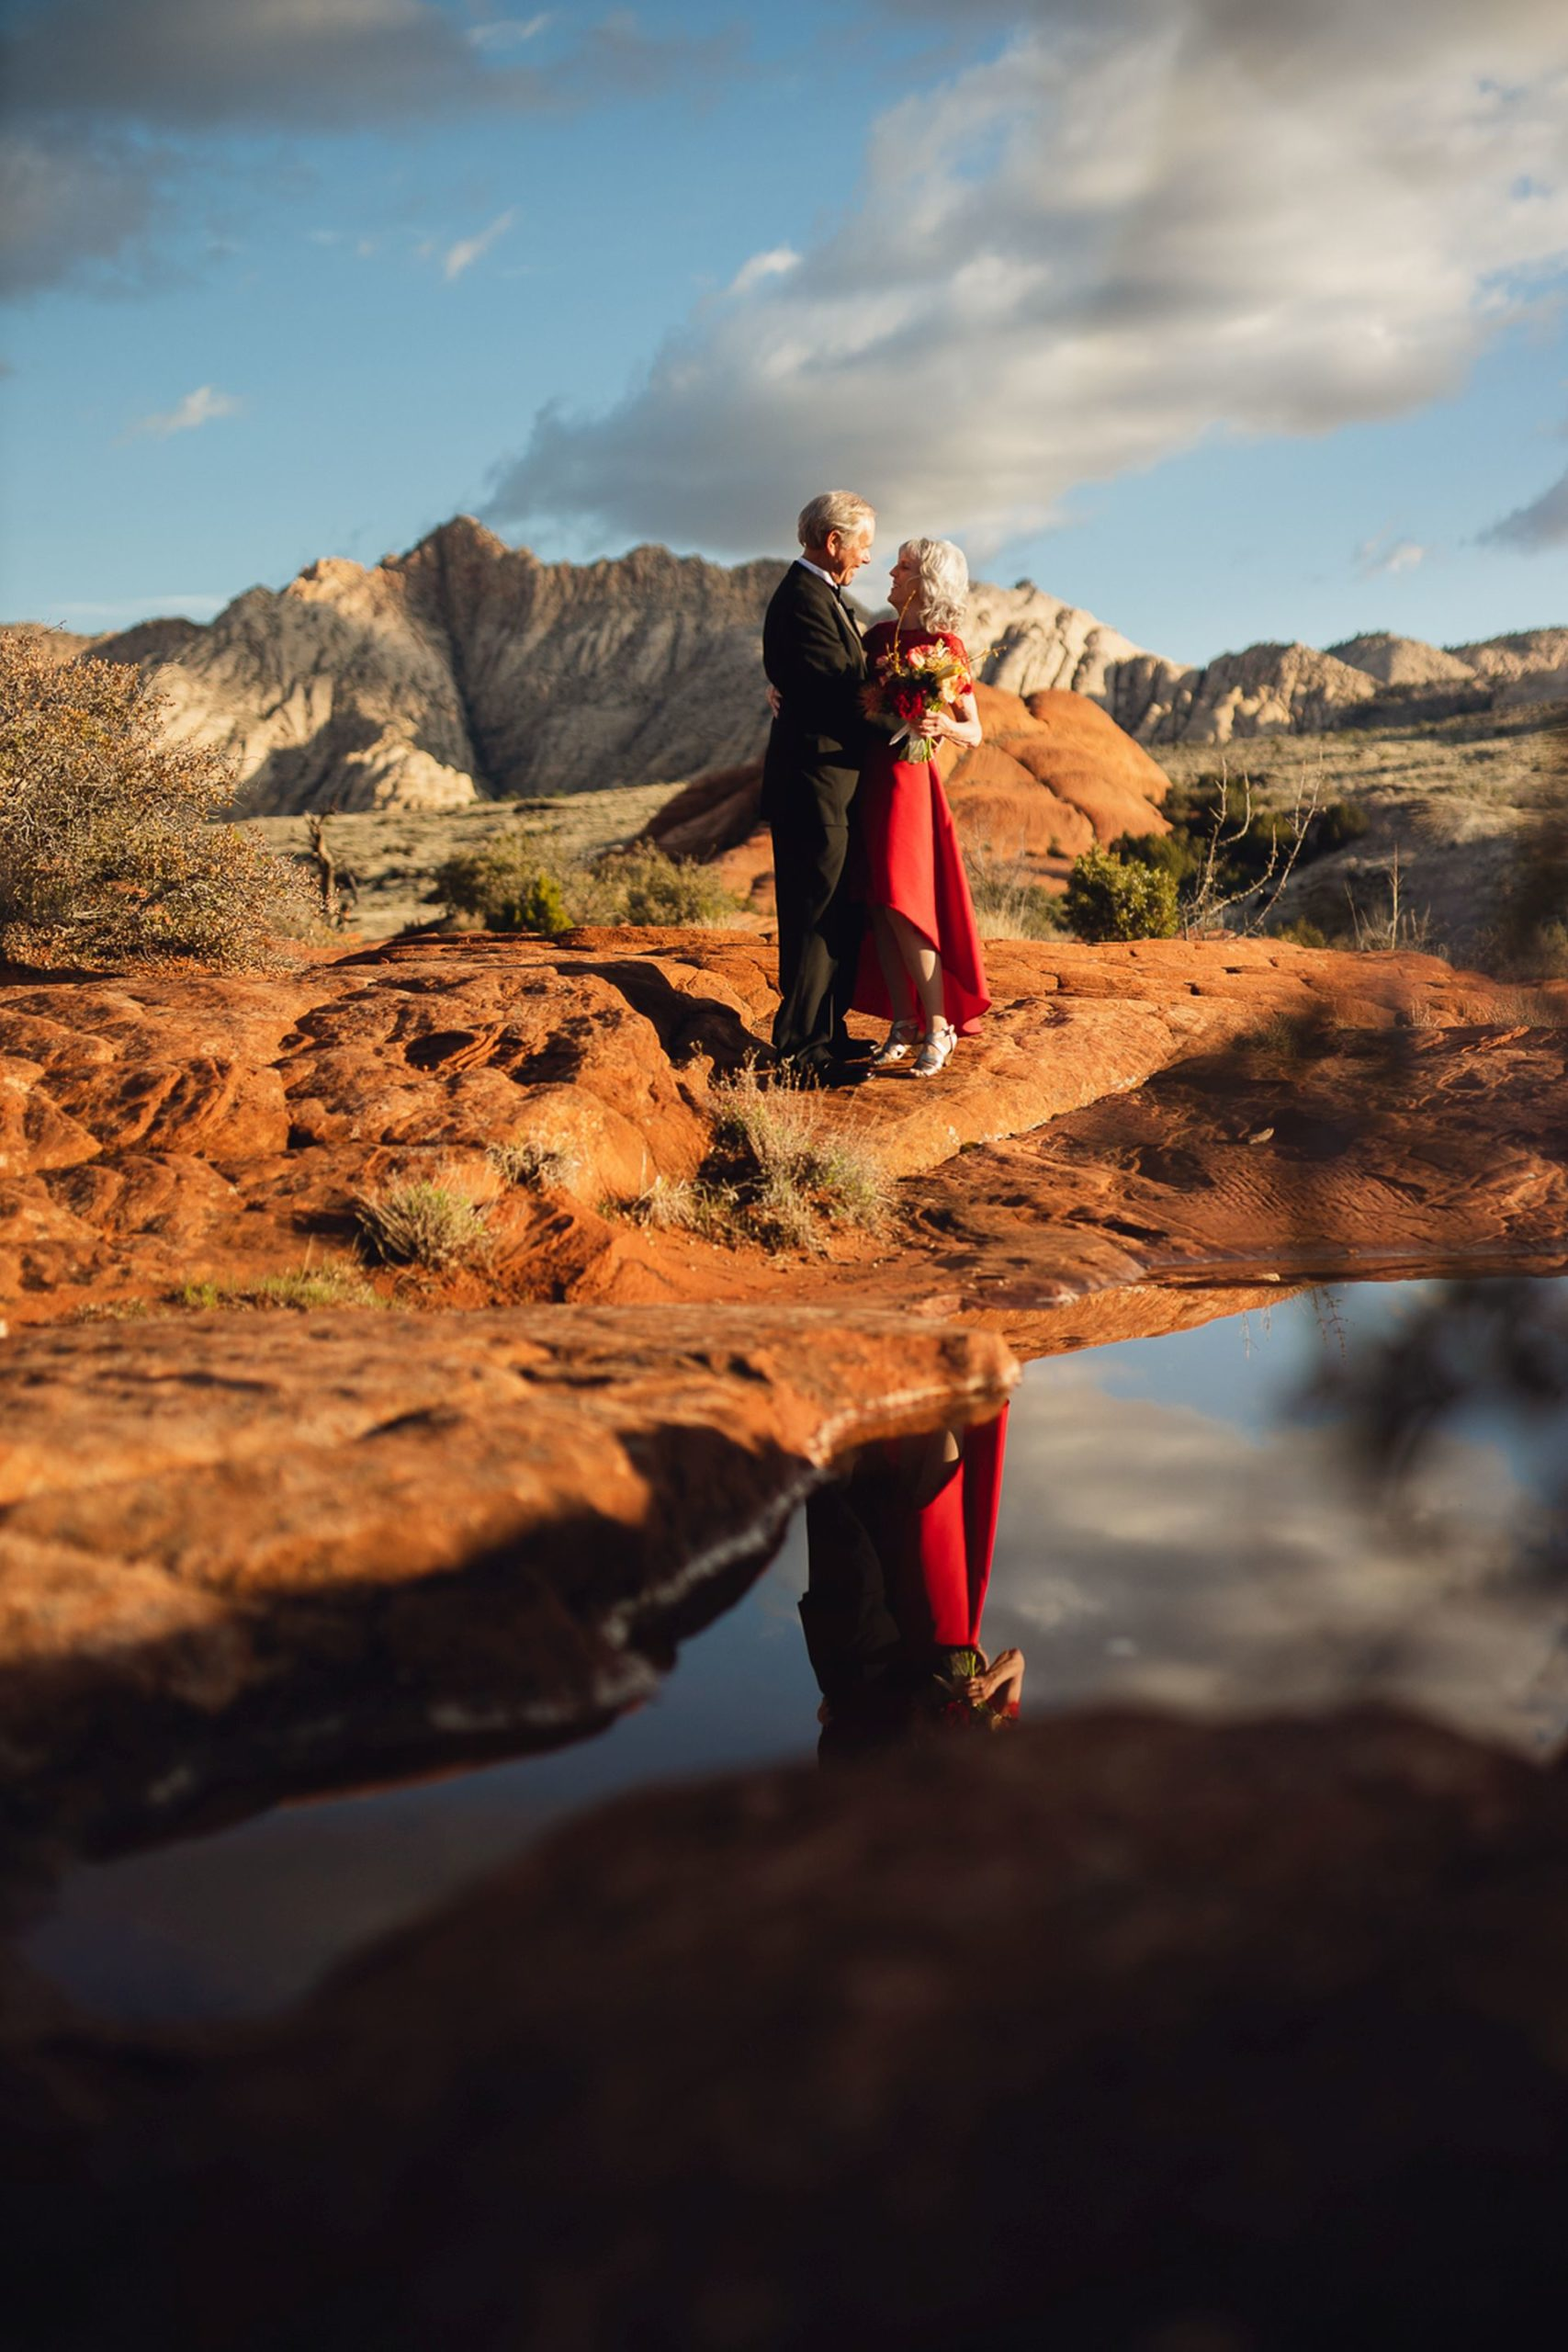 elopement wedding in the desert of utah - couple at wedding photo session at sunset